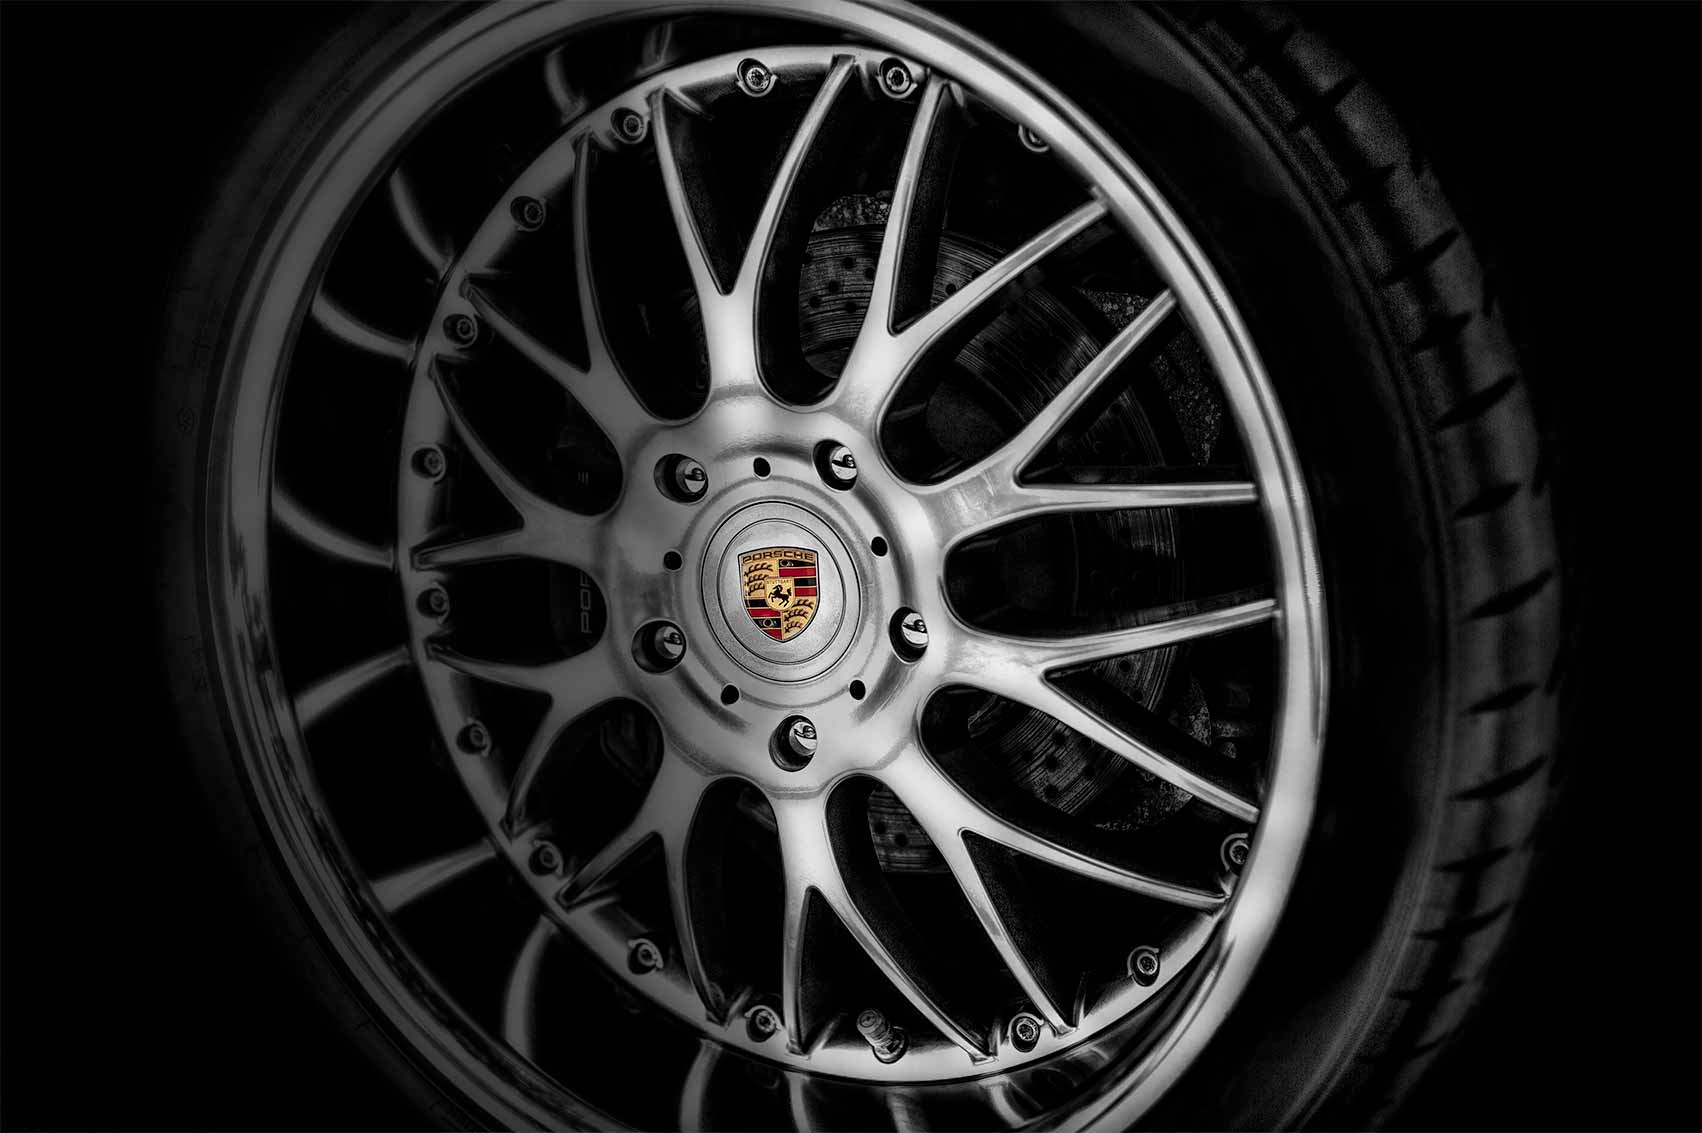 Porsche Spokes. Best Boston automotive photographer | RobyFabro